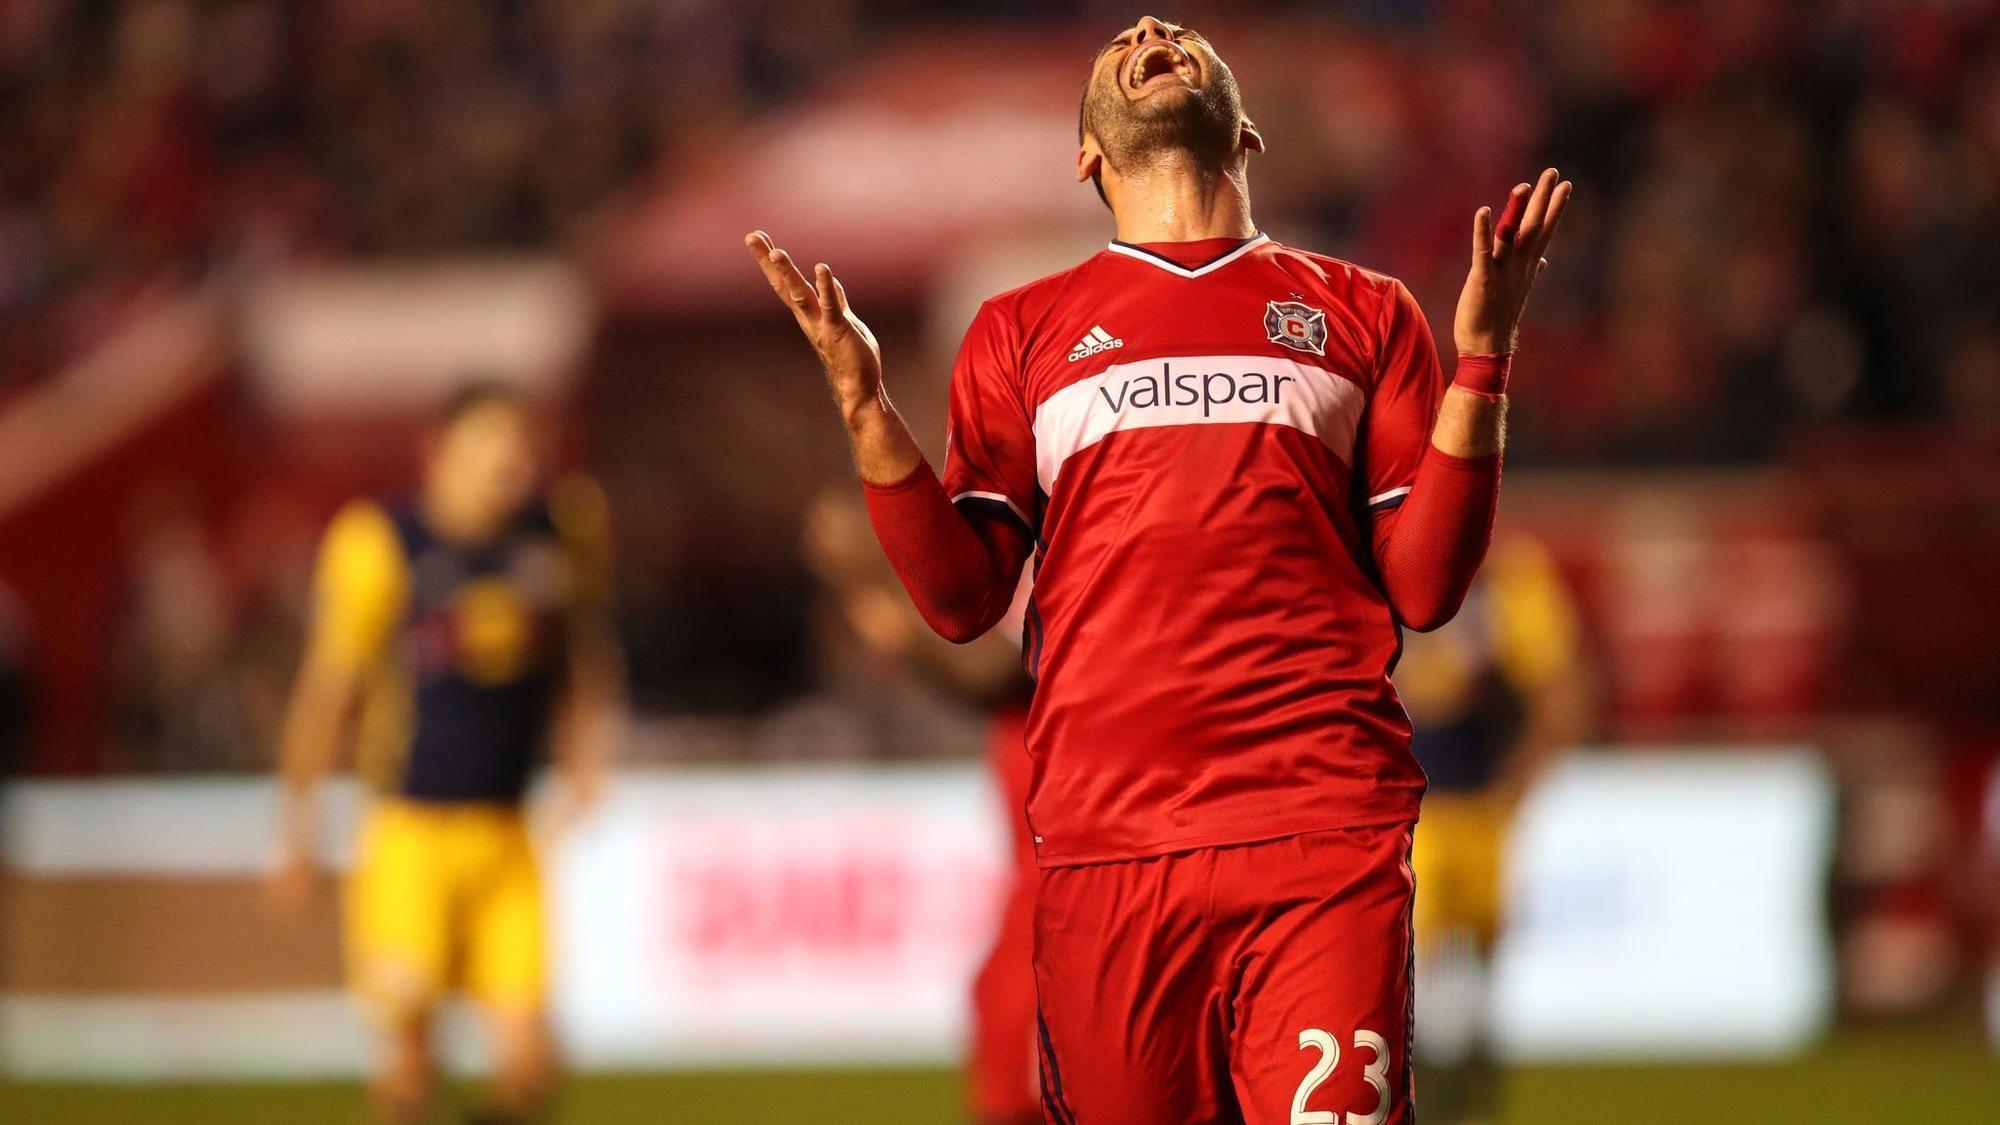 Ct-hoy-chicago-fire-bid-farwell-to-the-playoffs-thrashed-by-red-bulls-20171026